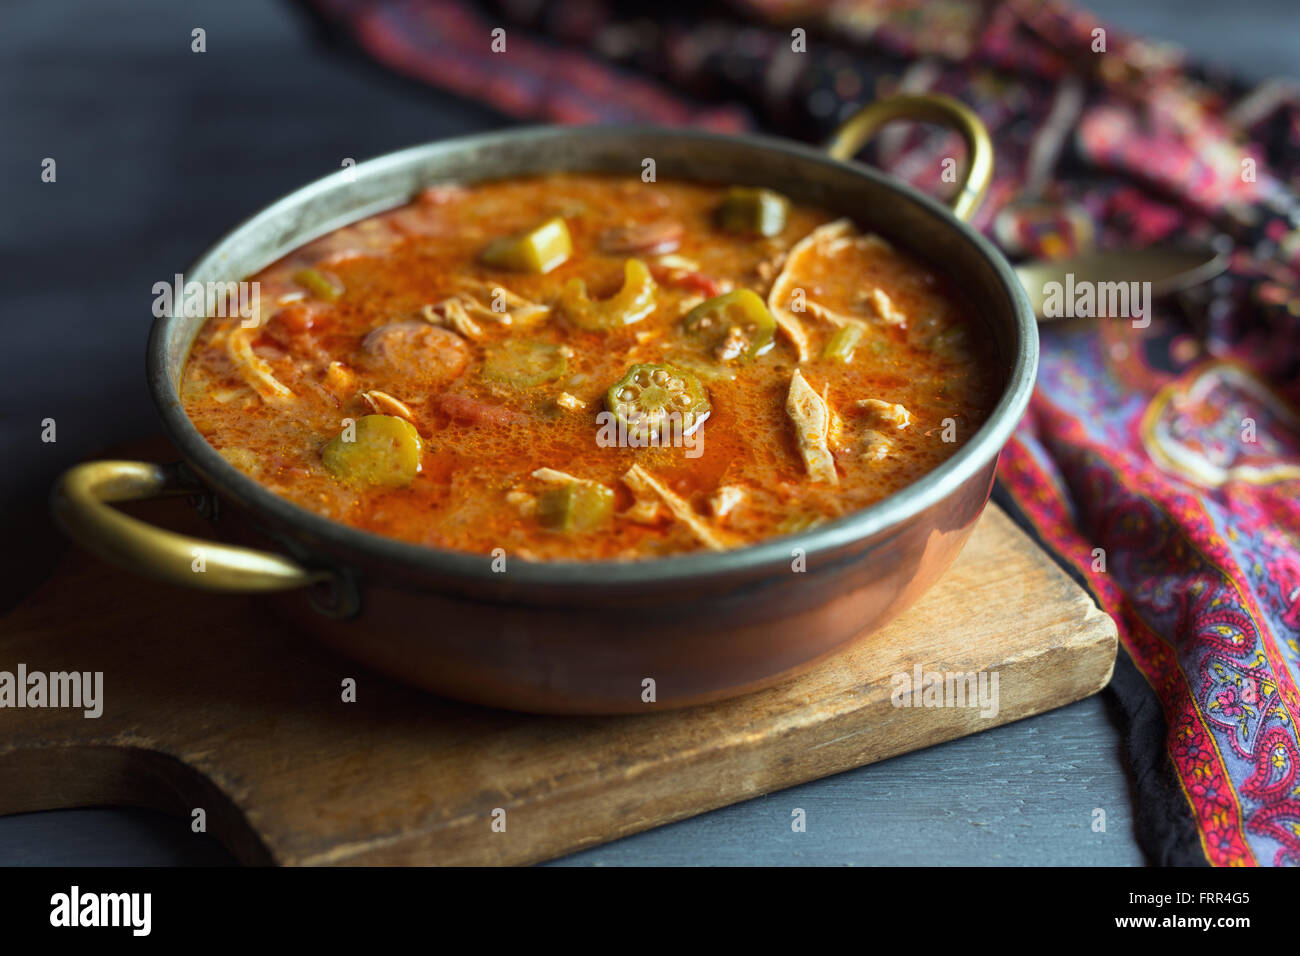 Copper pot filled with chicken and sausage gumbo. - Stock Image